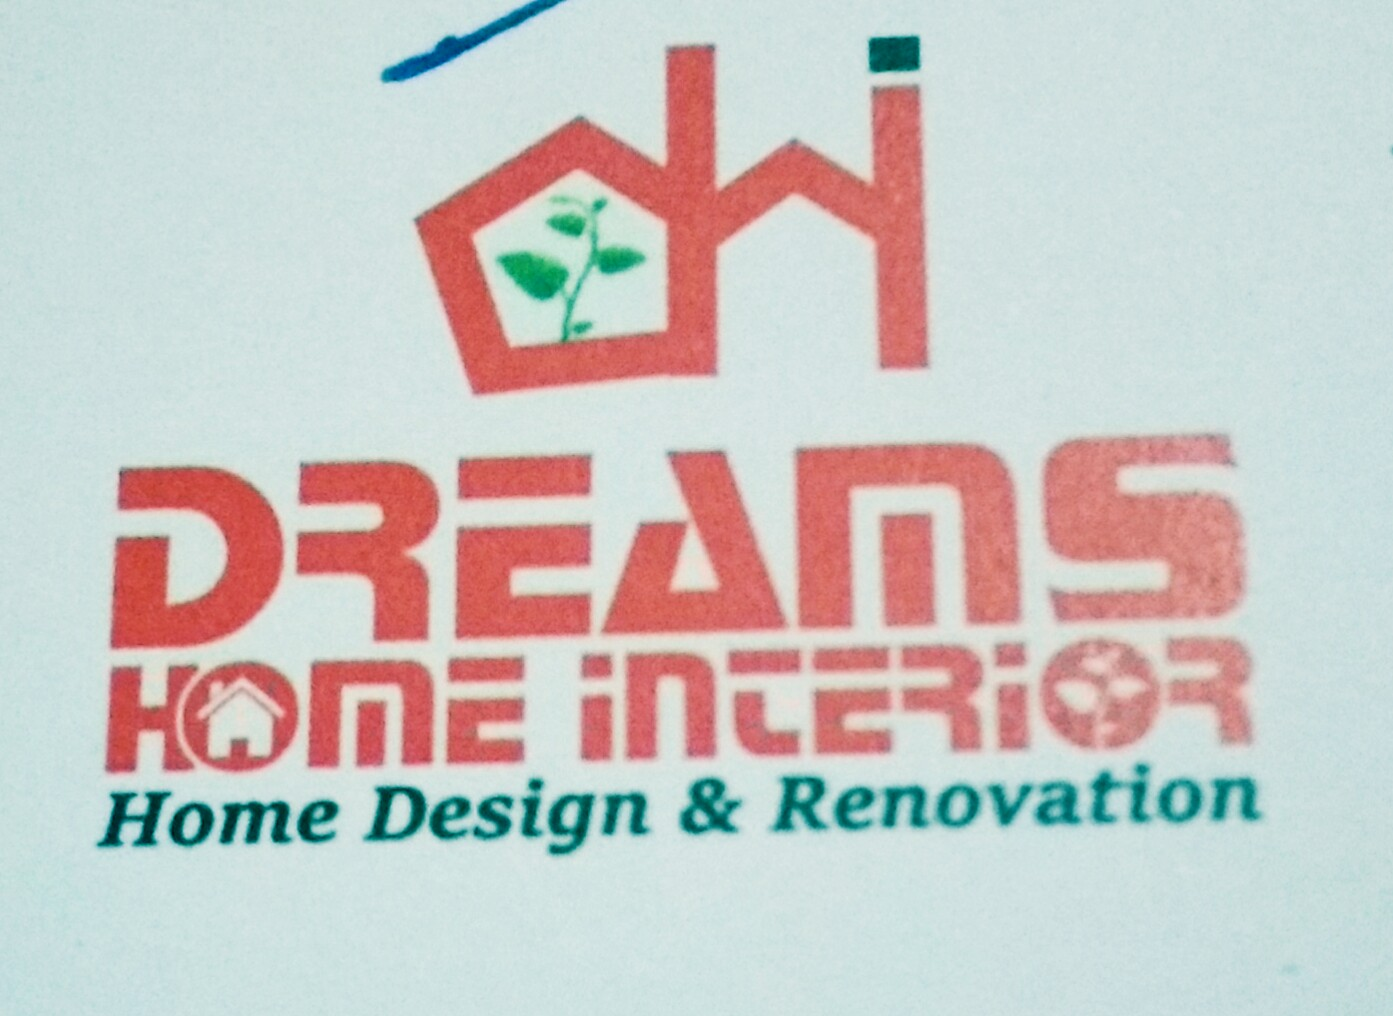 Dream Home Interior - logo